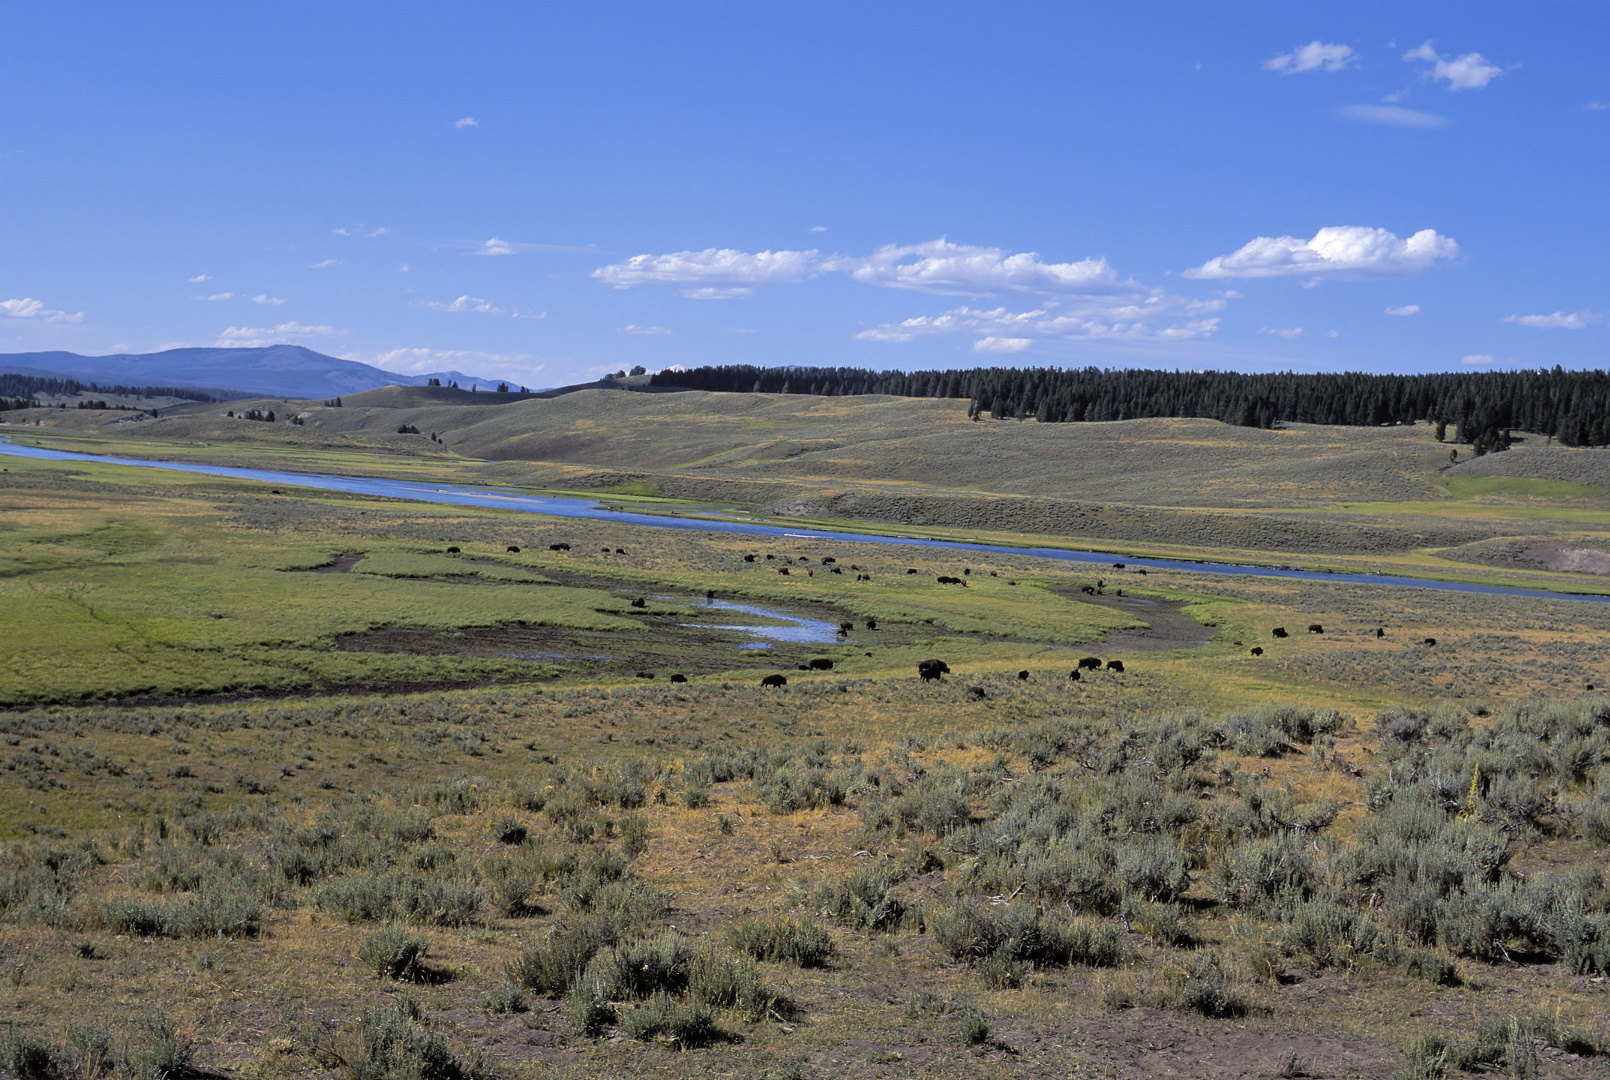 Bison on the high plains of Yellowstone National Park.